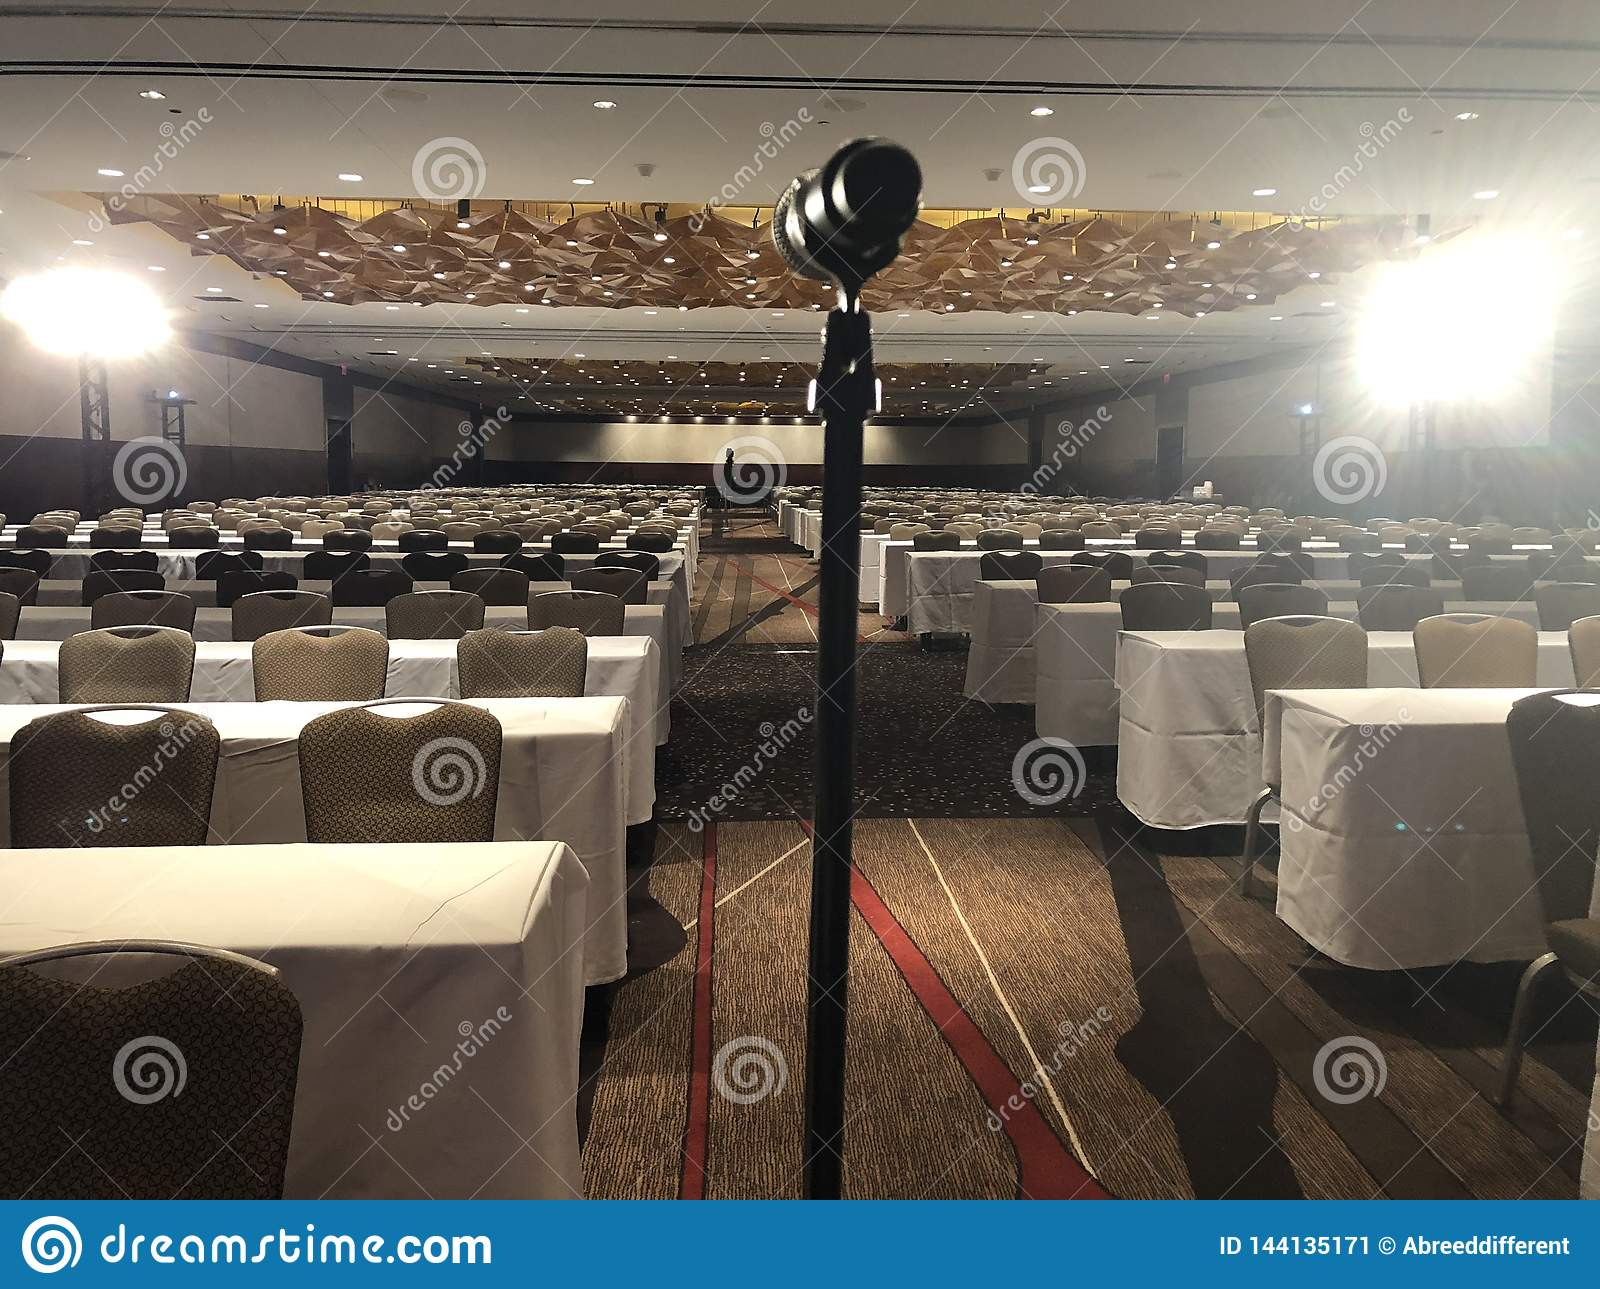 Meeting Room for Large Event or Conference